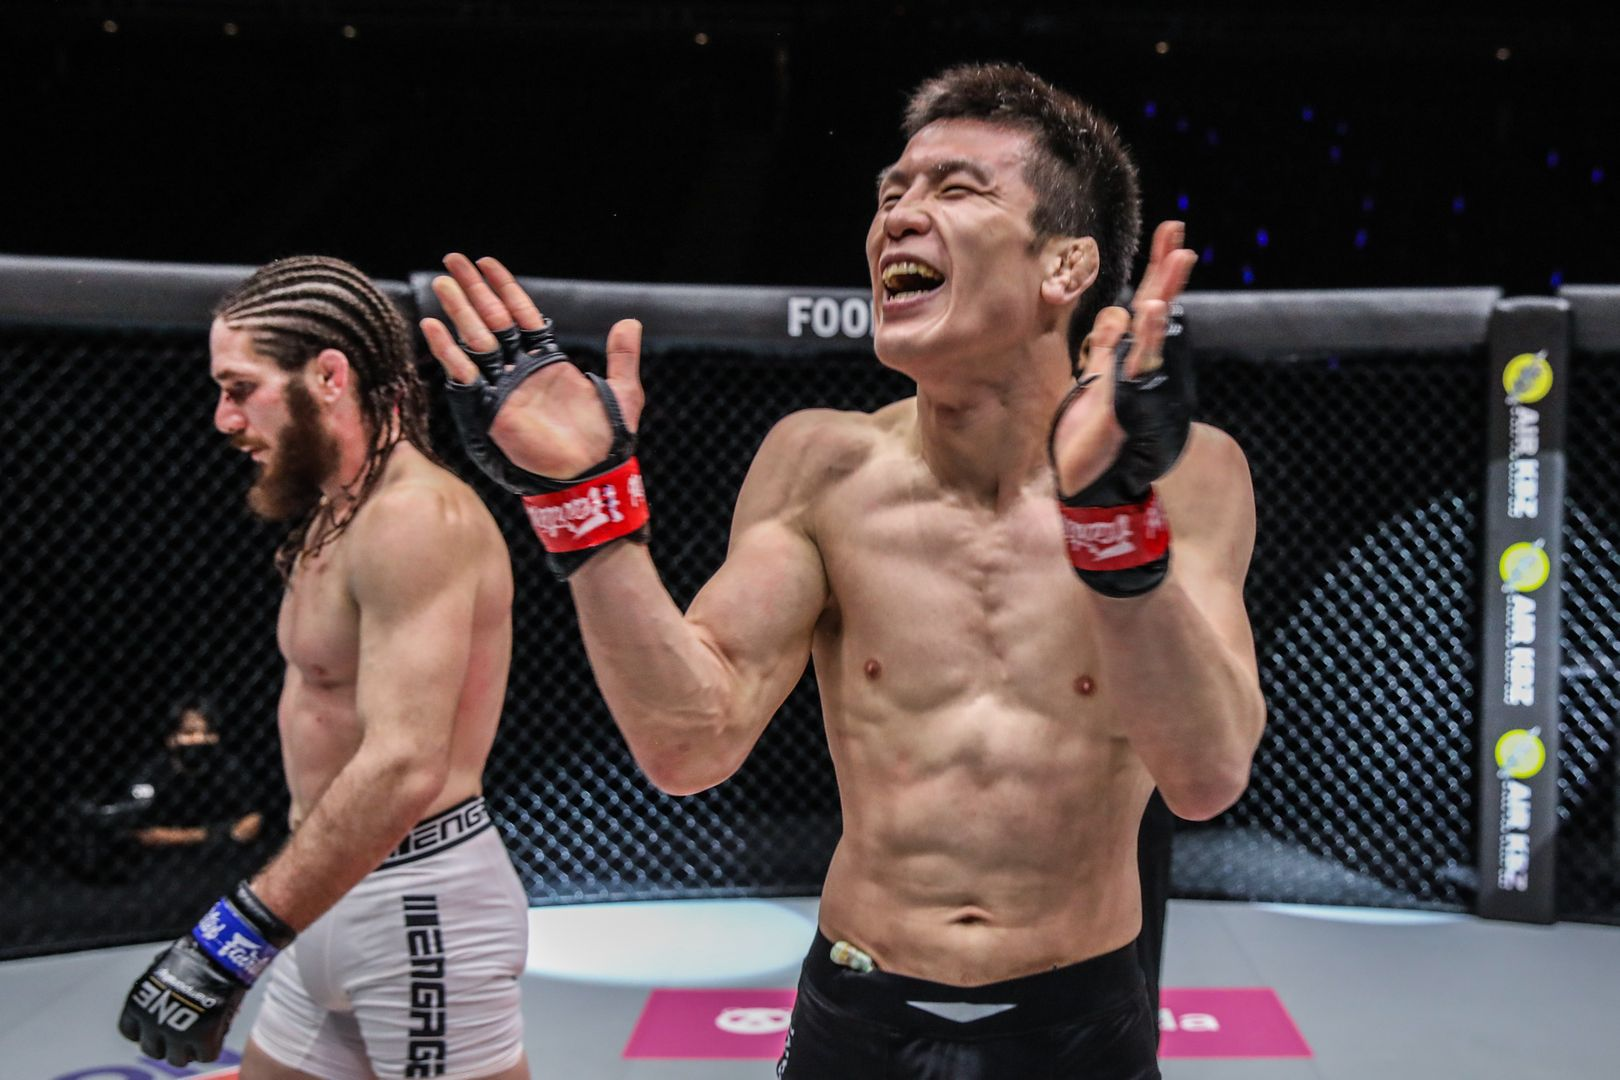 Japanese MMA fighter Shinya Aoki claps following his victory